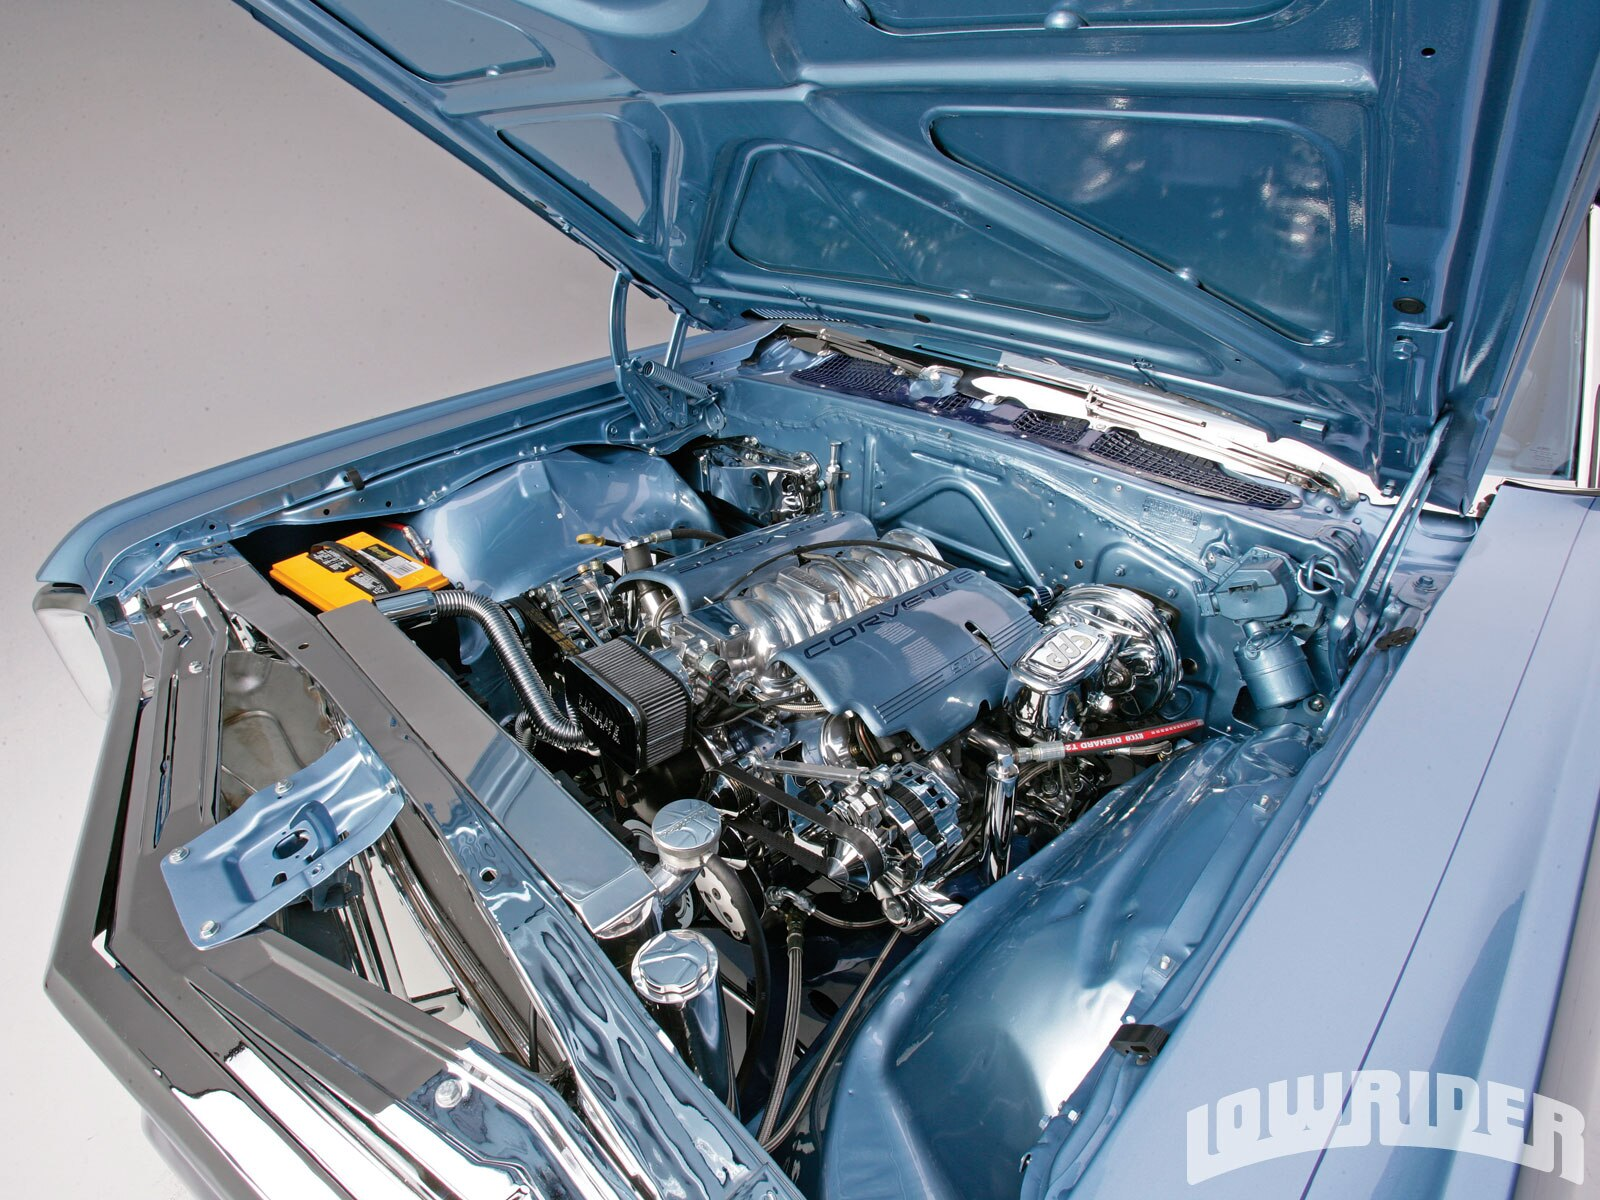 lrmp_1010_03_o-1969_chevrolet_impala_convertible-corvette_engine2